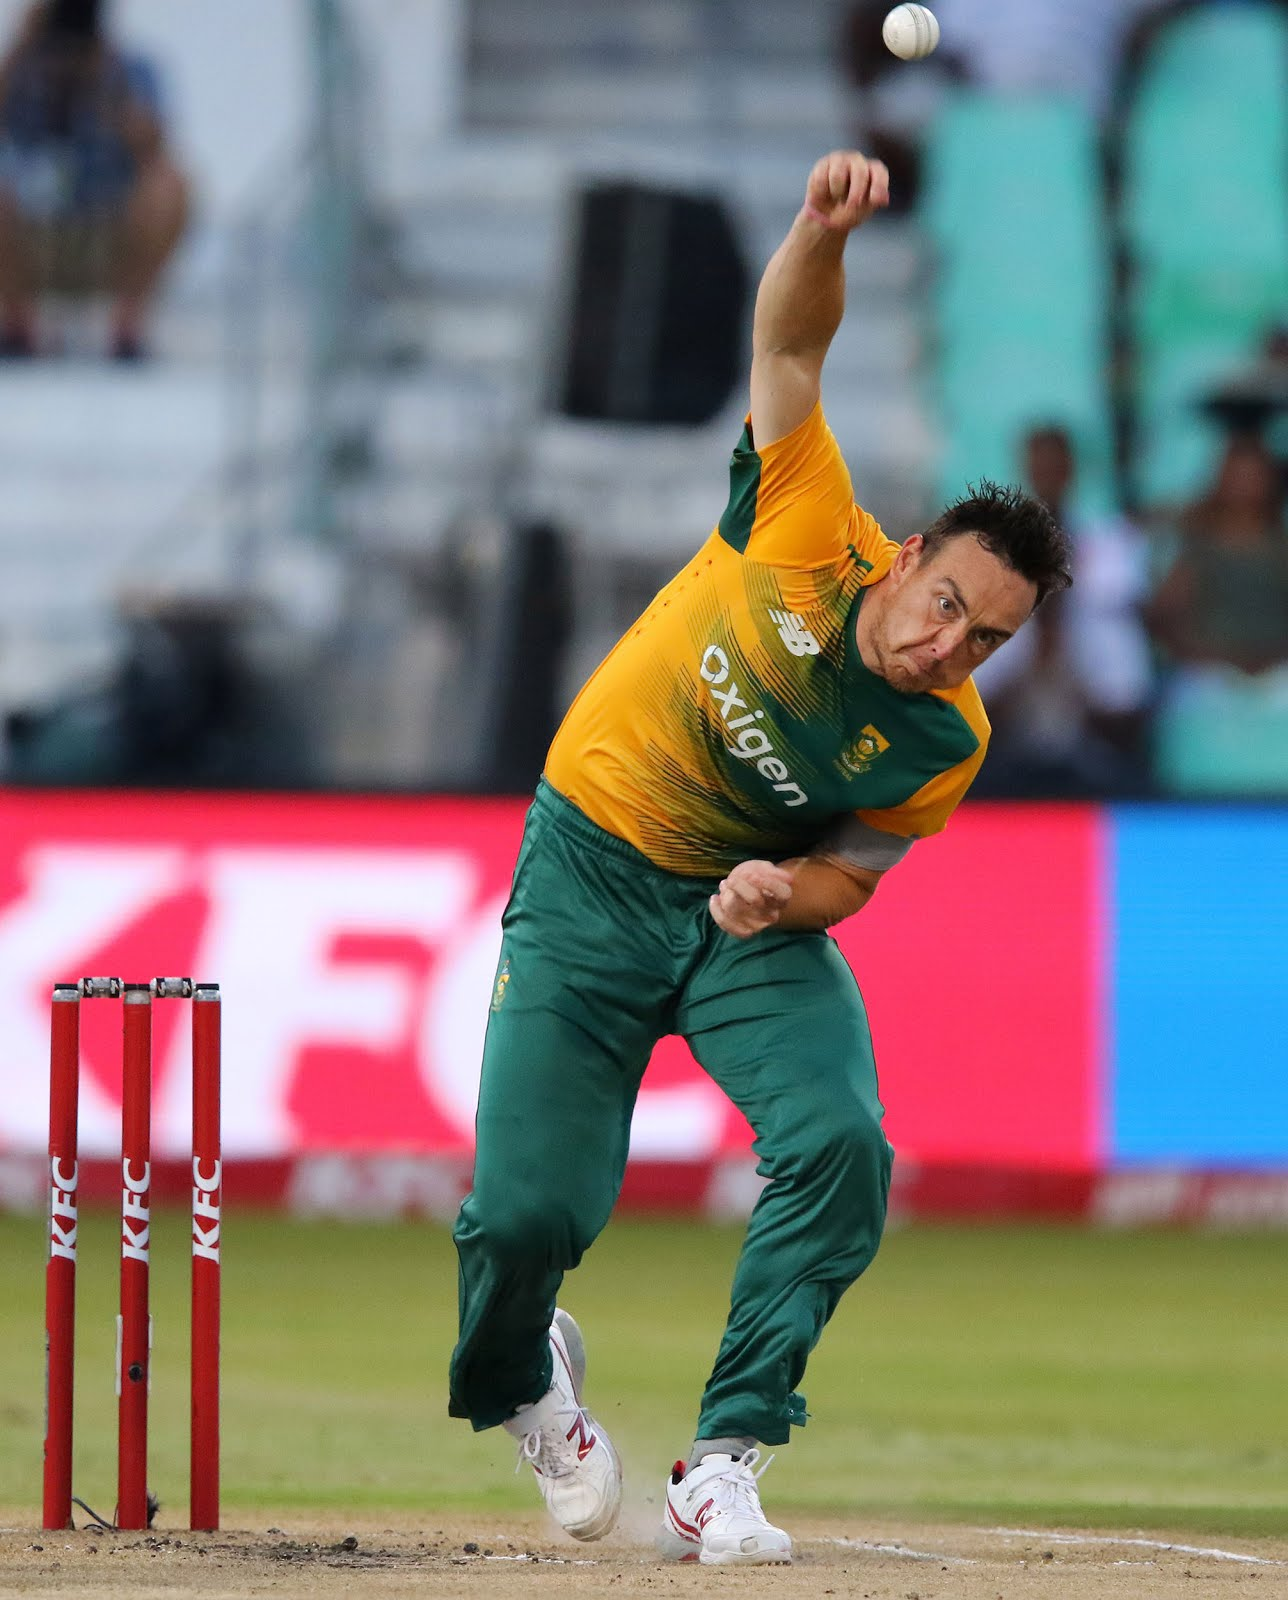 Kyle Abbott seamer bowing for South Africa